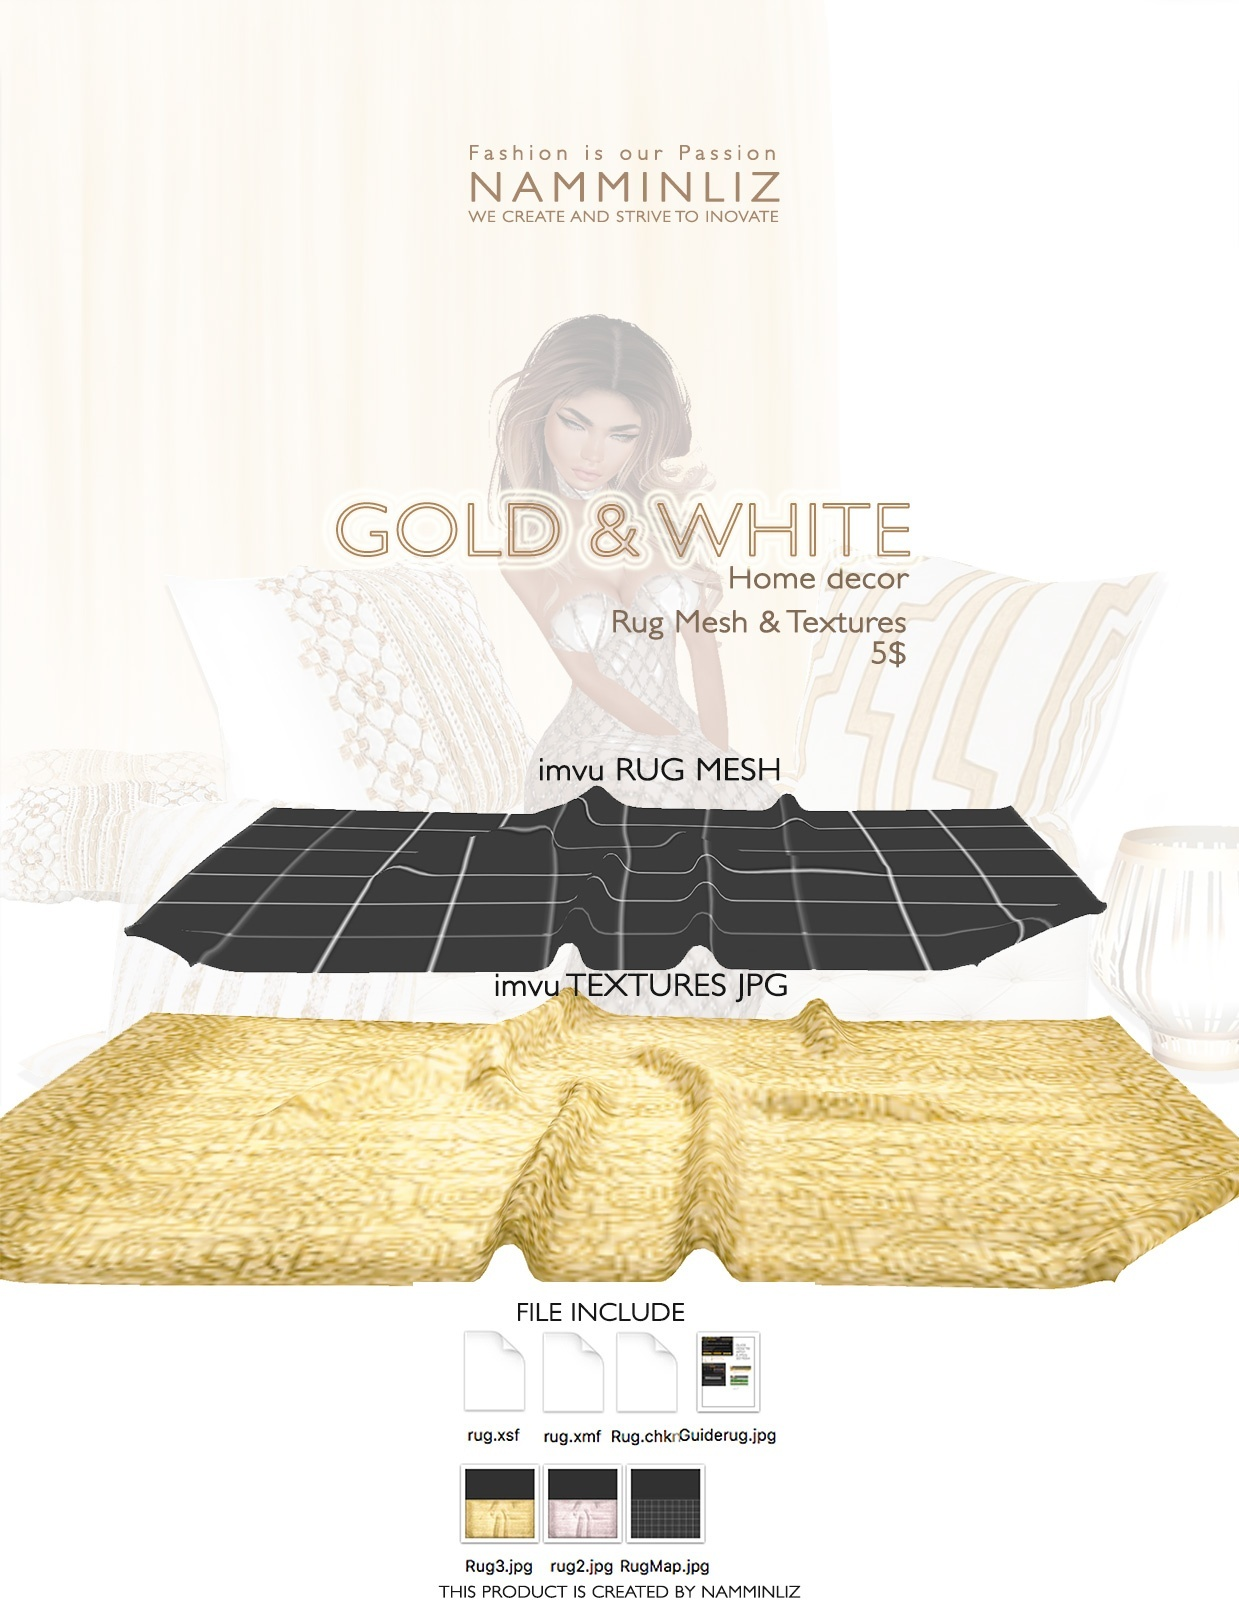 Gold & White imvu Full mesh & texture JPG, XSF, XMF, CHKN files